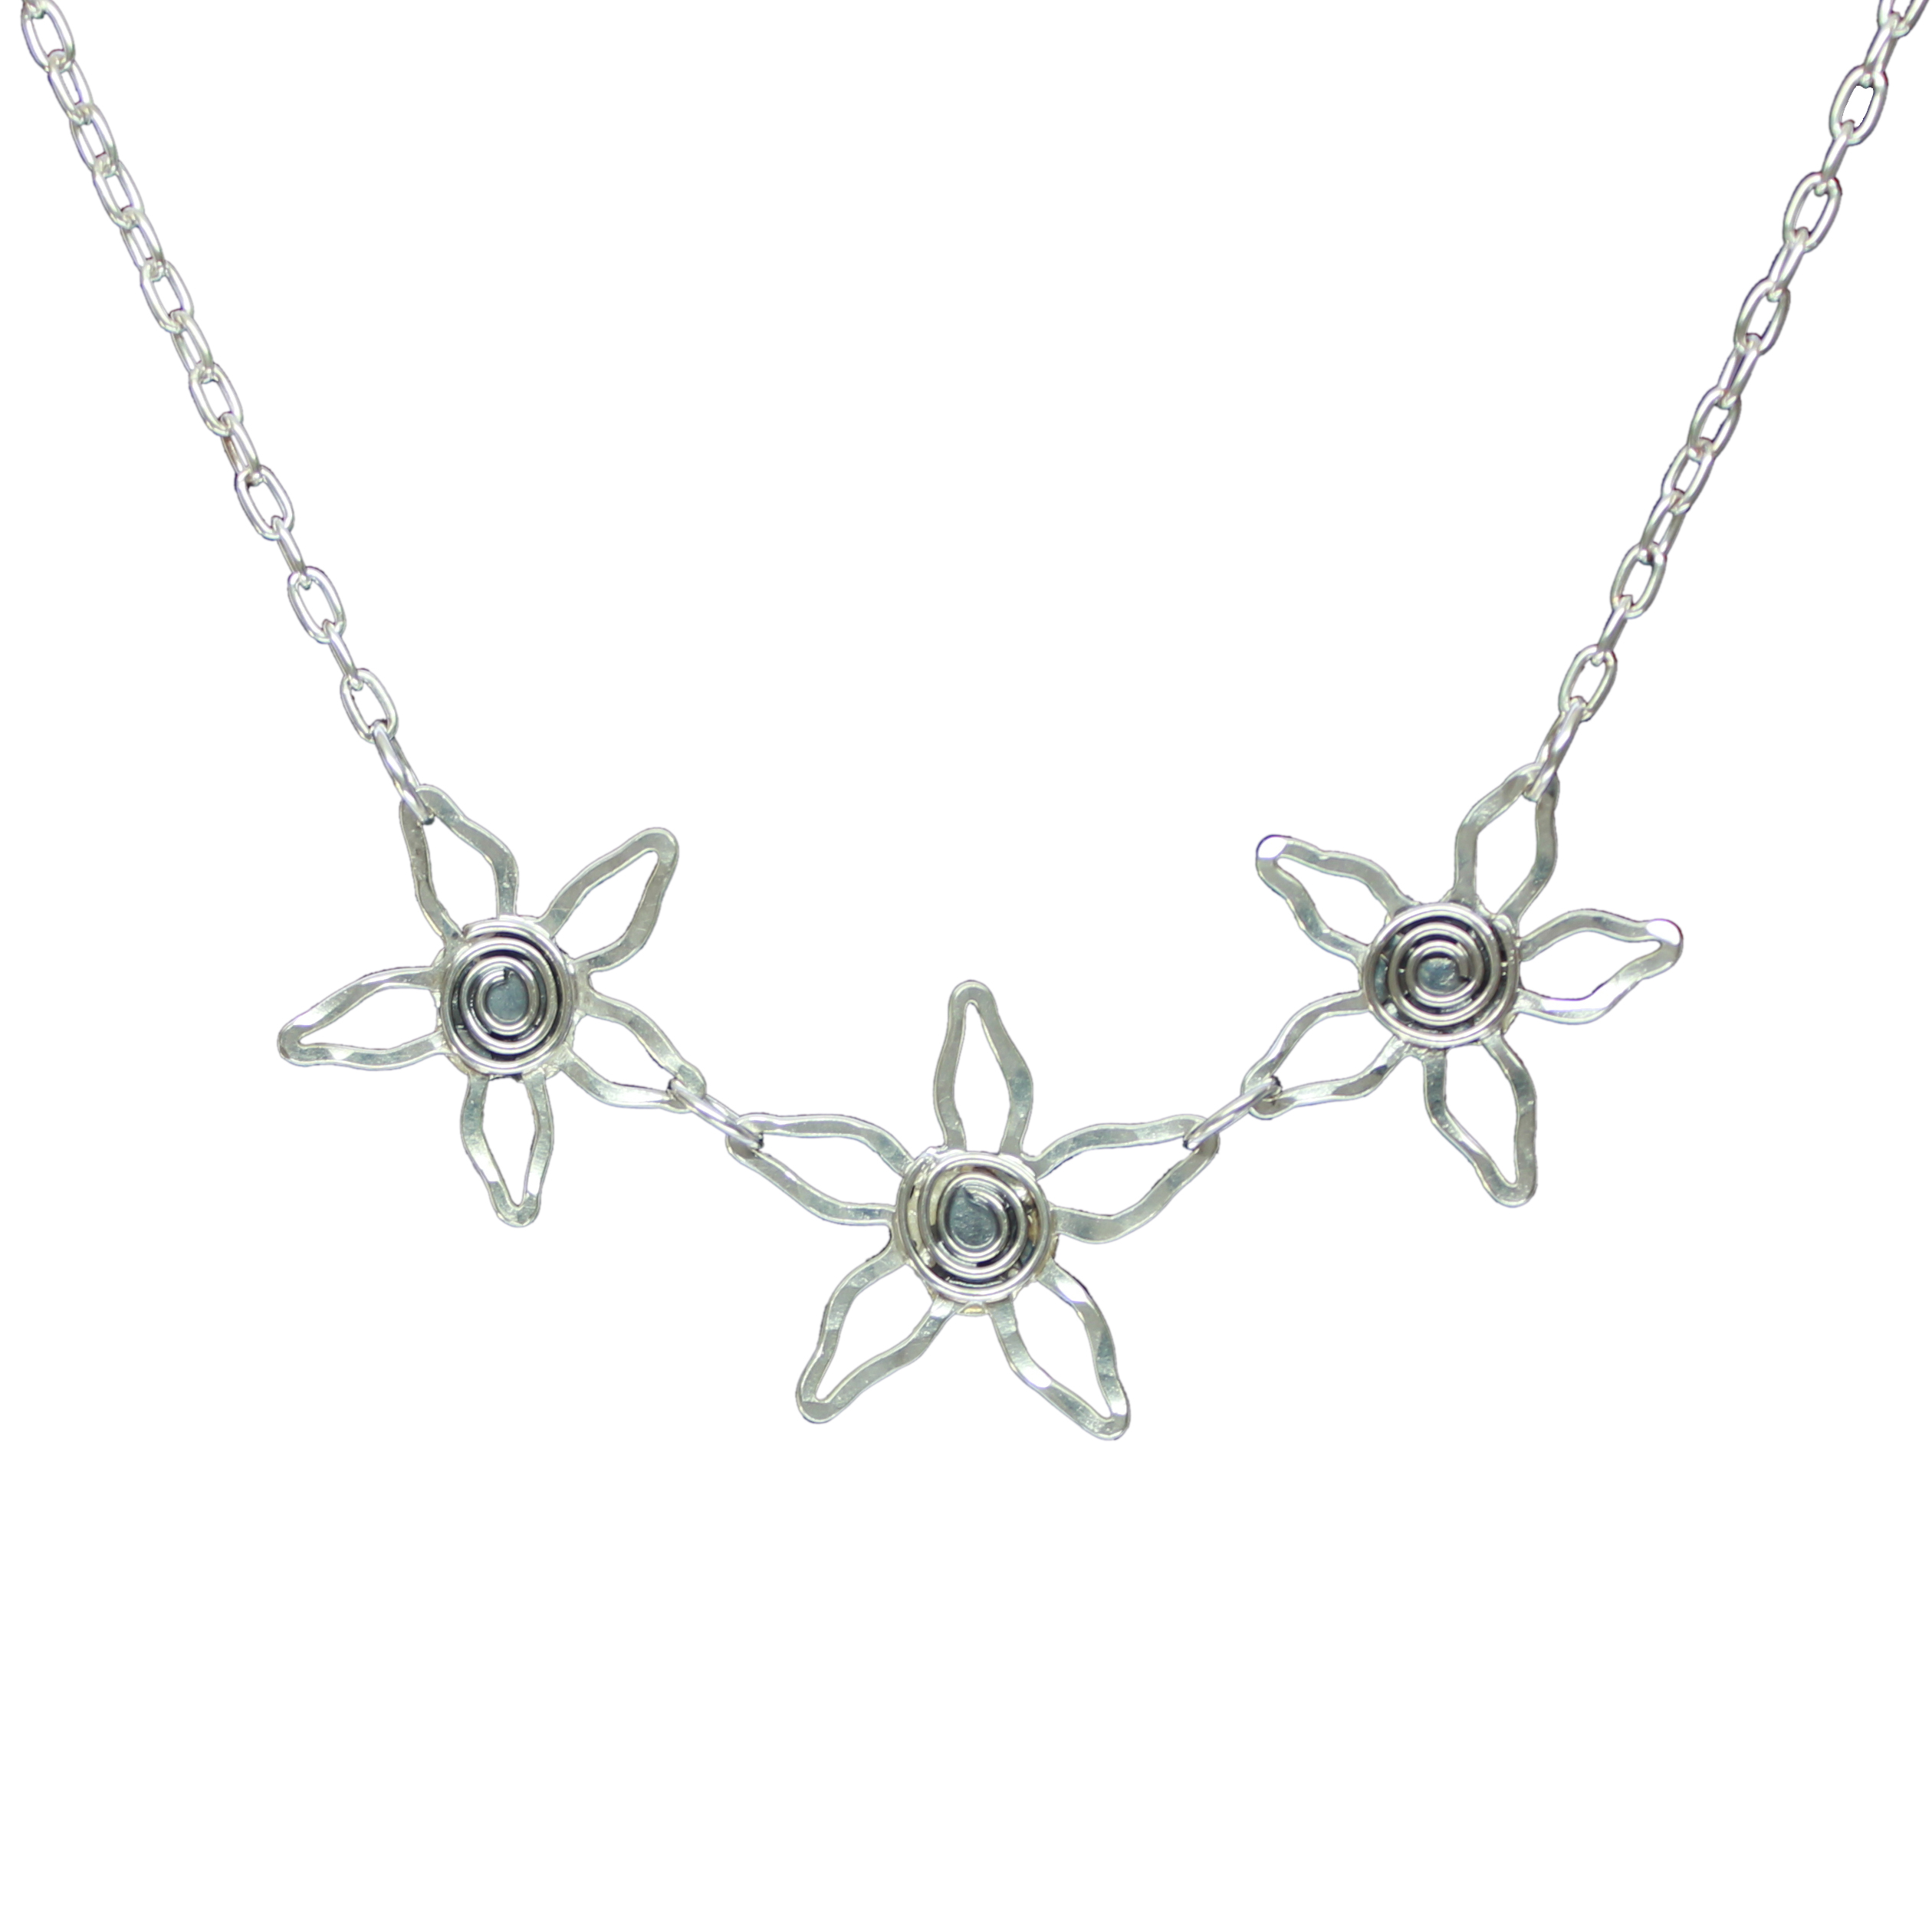 Spiral flower necklace